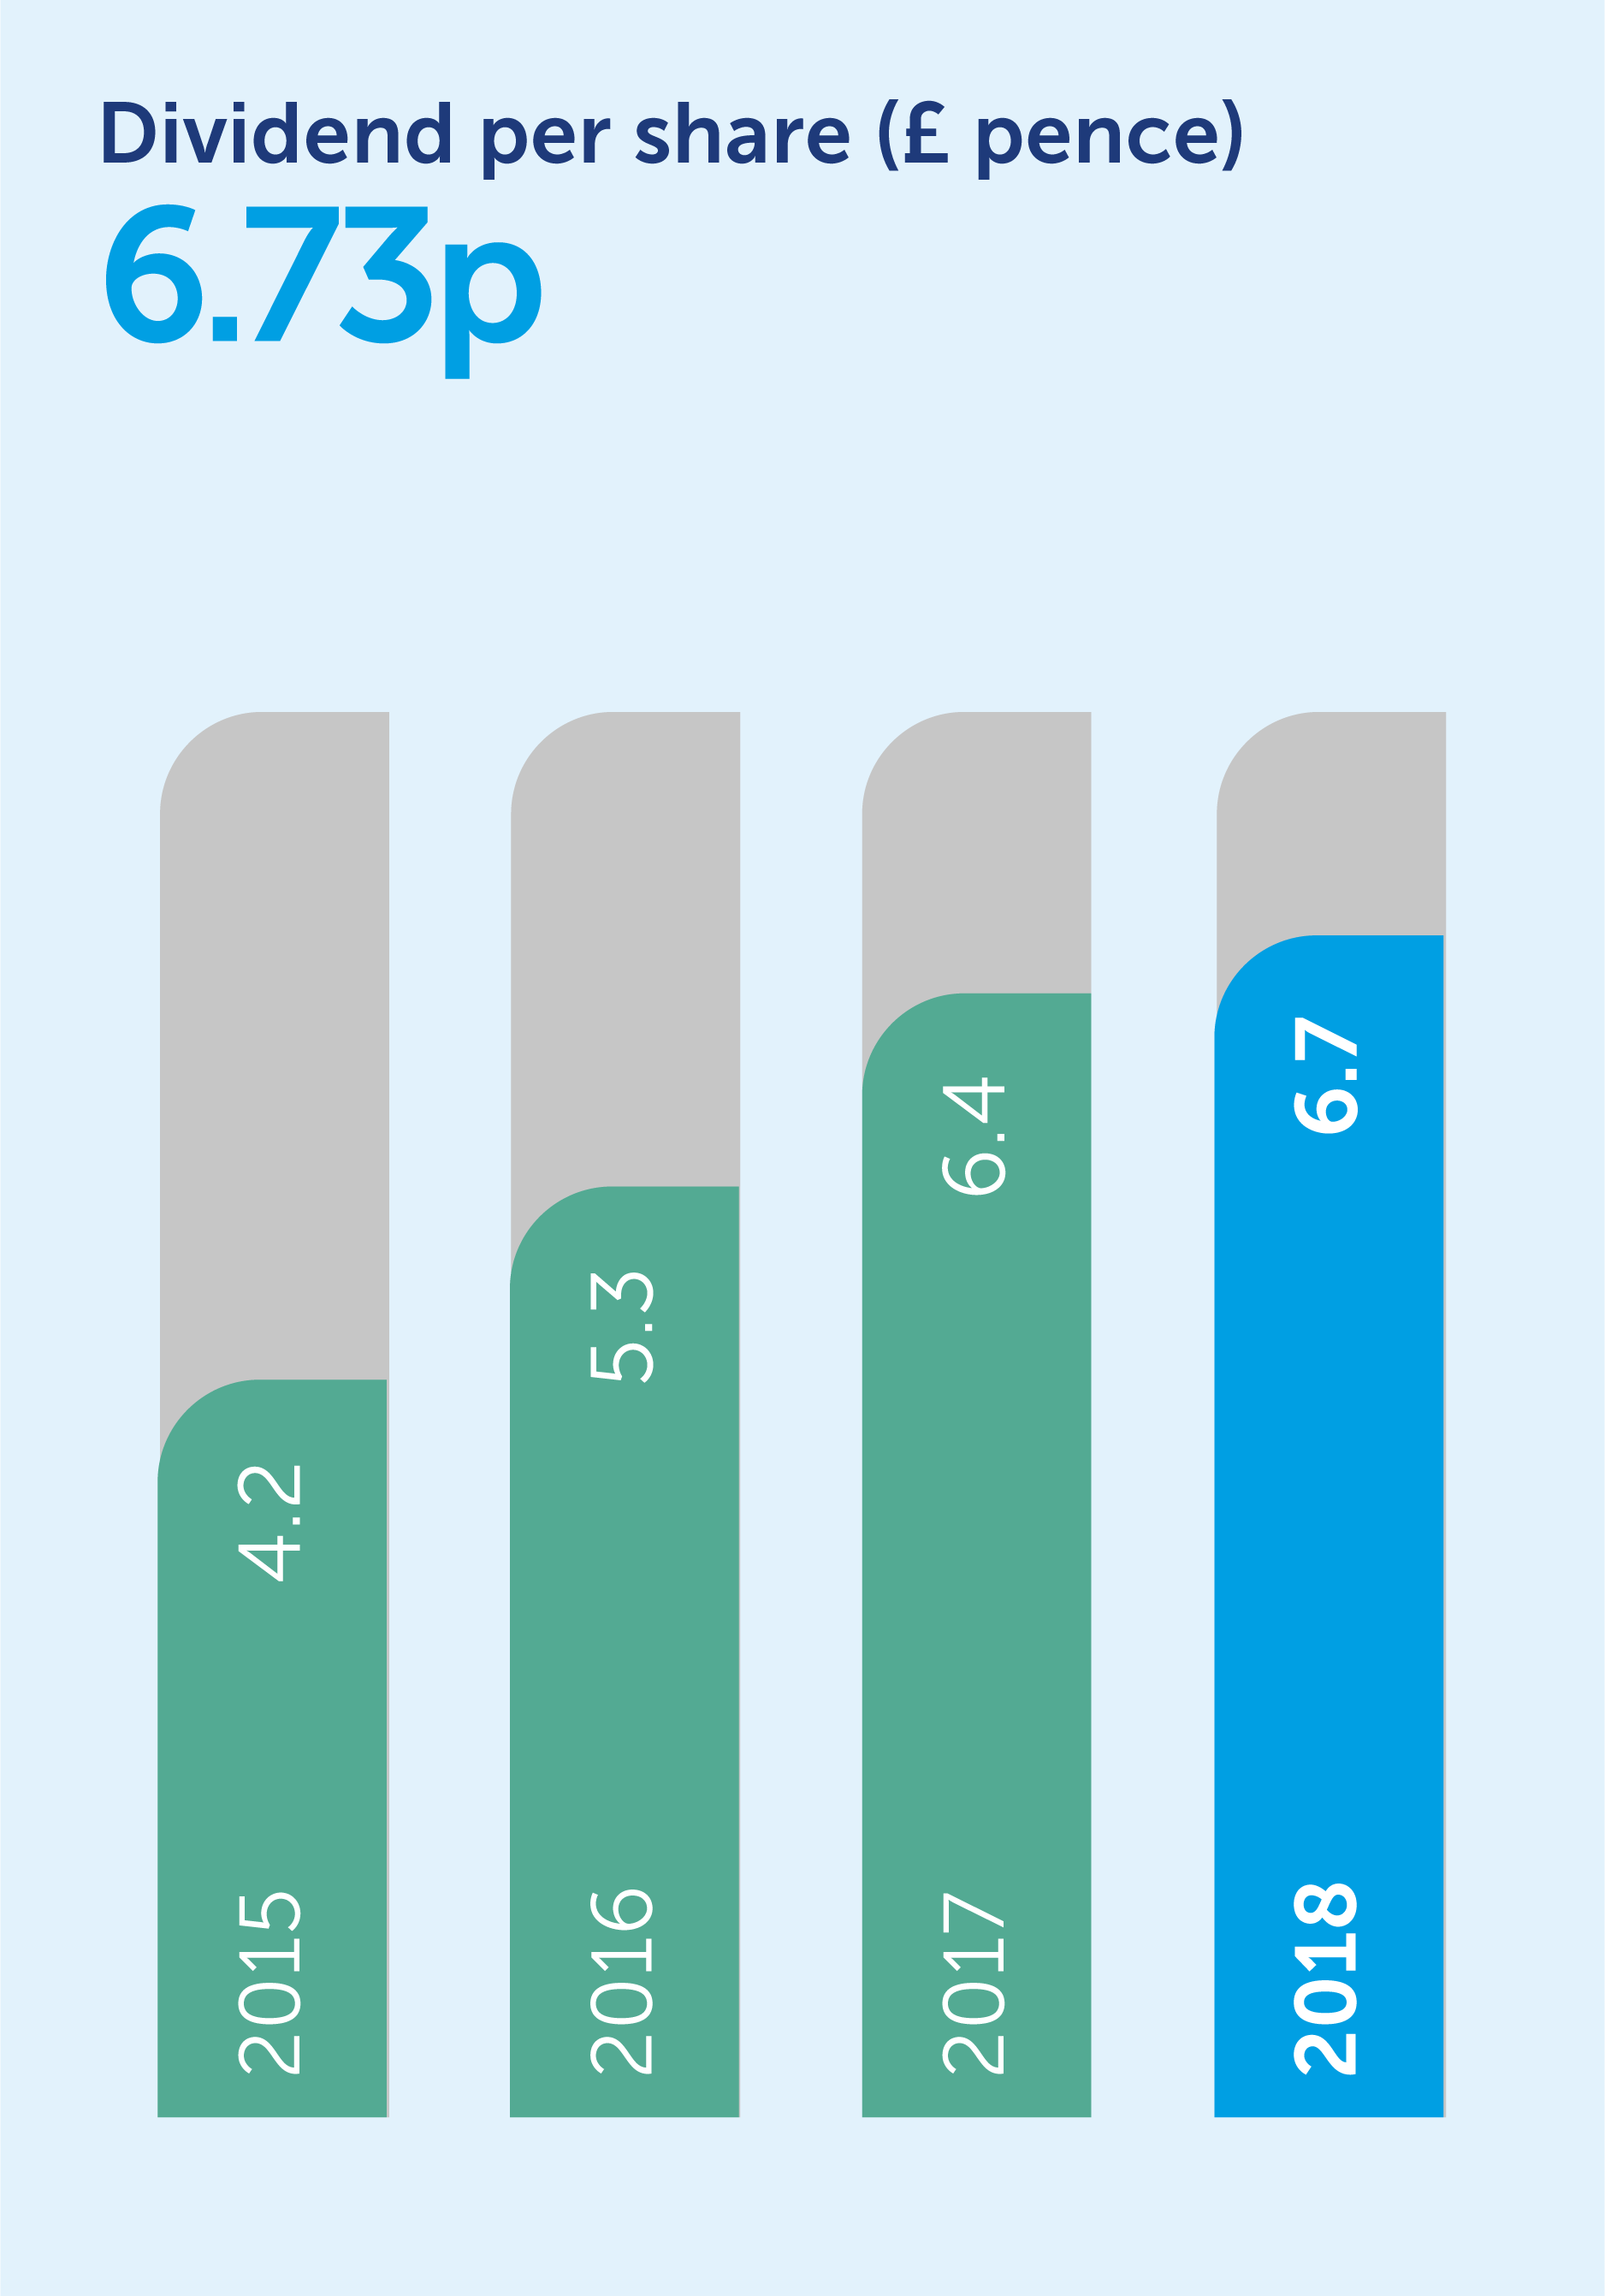 31862-dividend-per-share_bar-chart_new.png